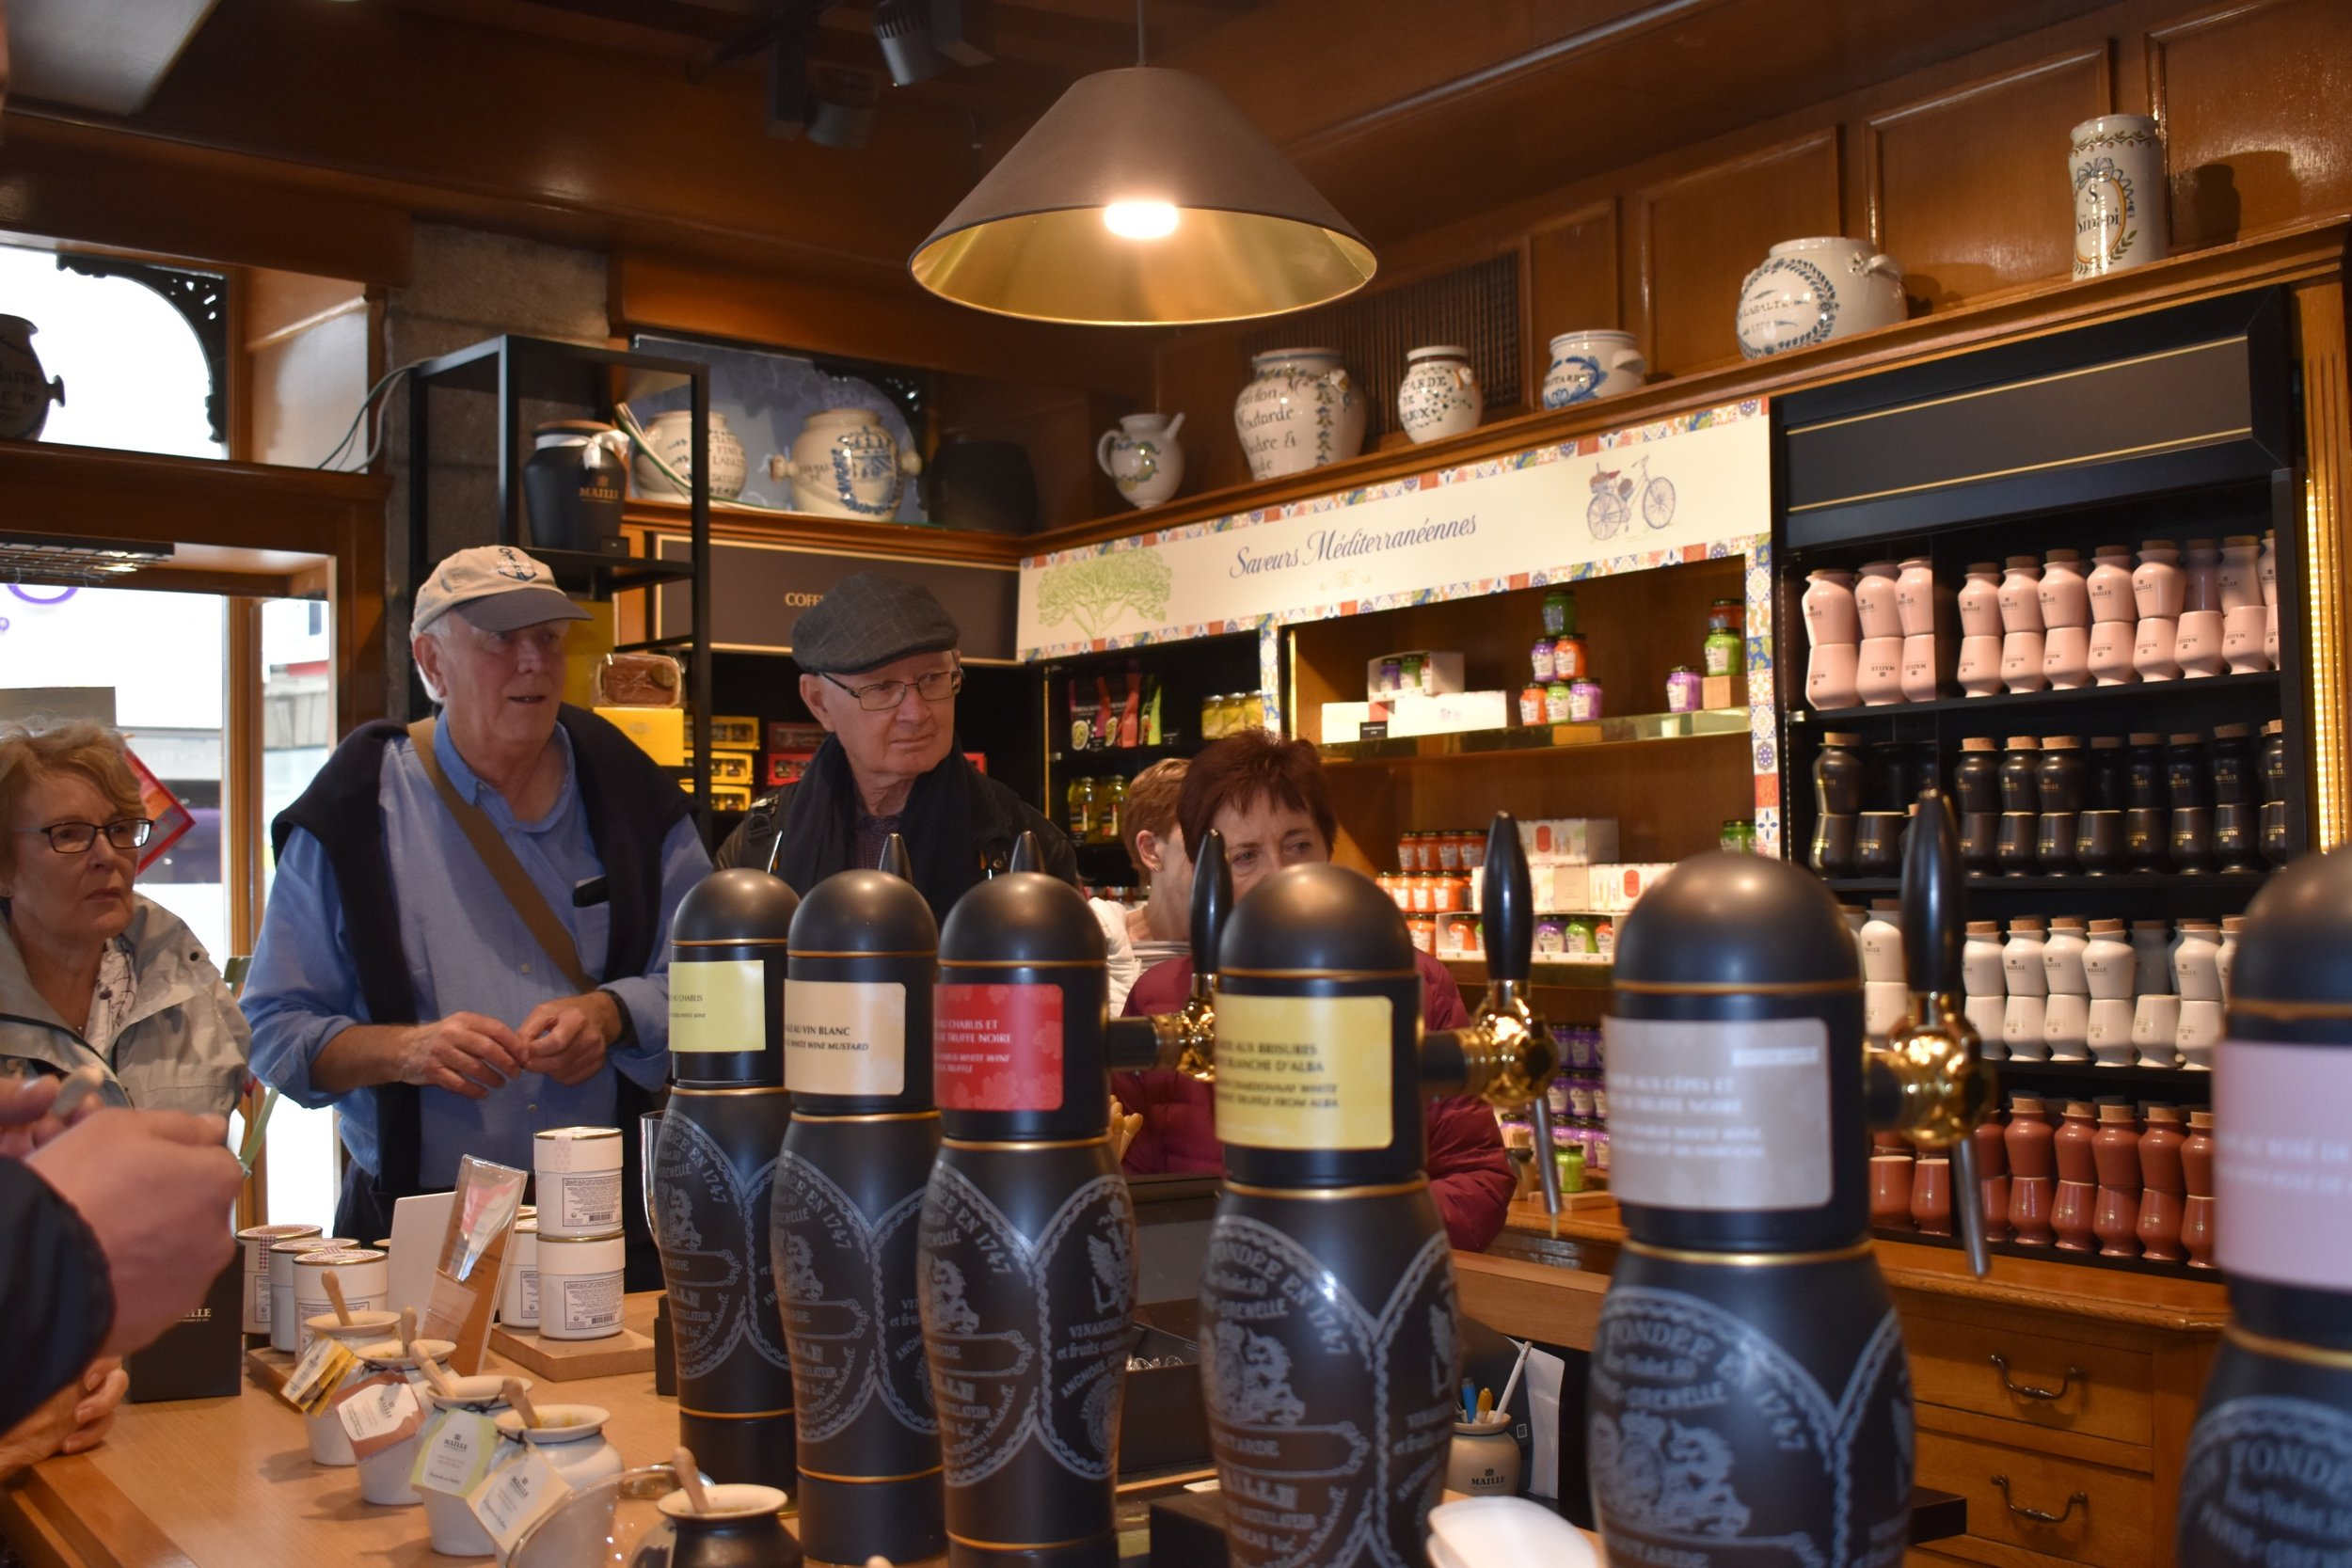 Tasting at the Maille Mustard Venue in Dijon